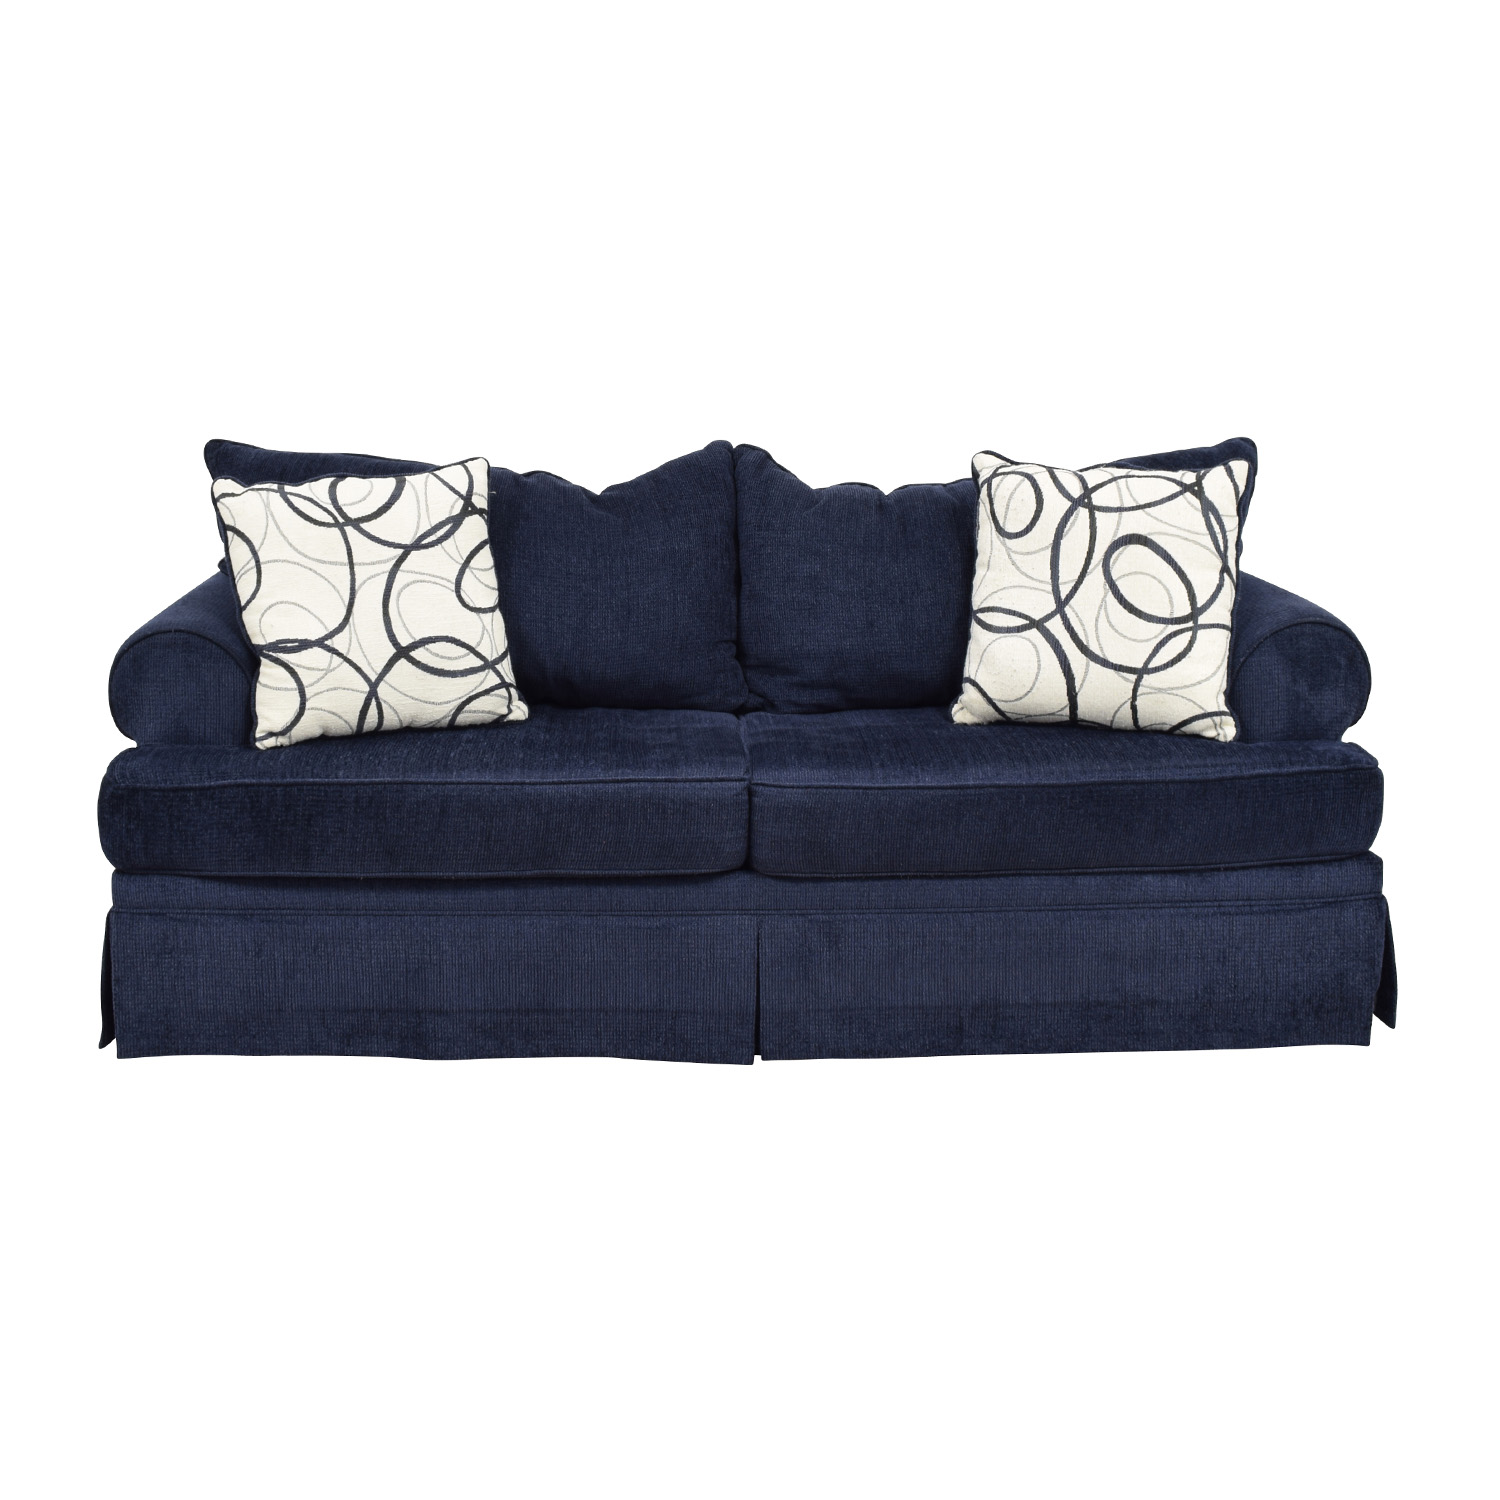 Bobs Furniture Bobs Furniture Deep Blue Sofa On Sale ...